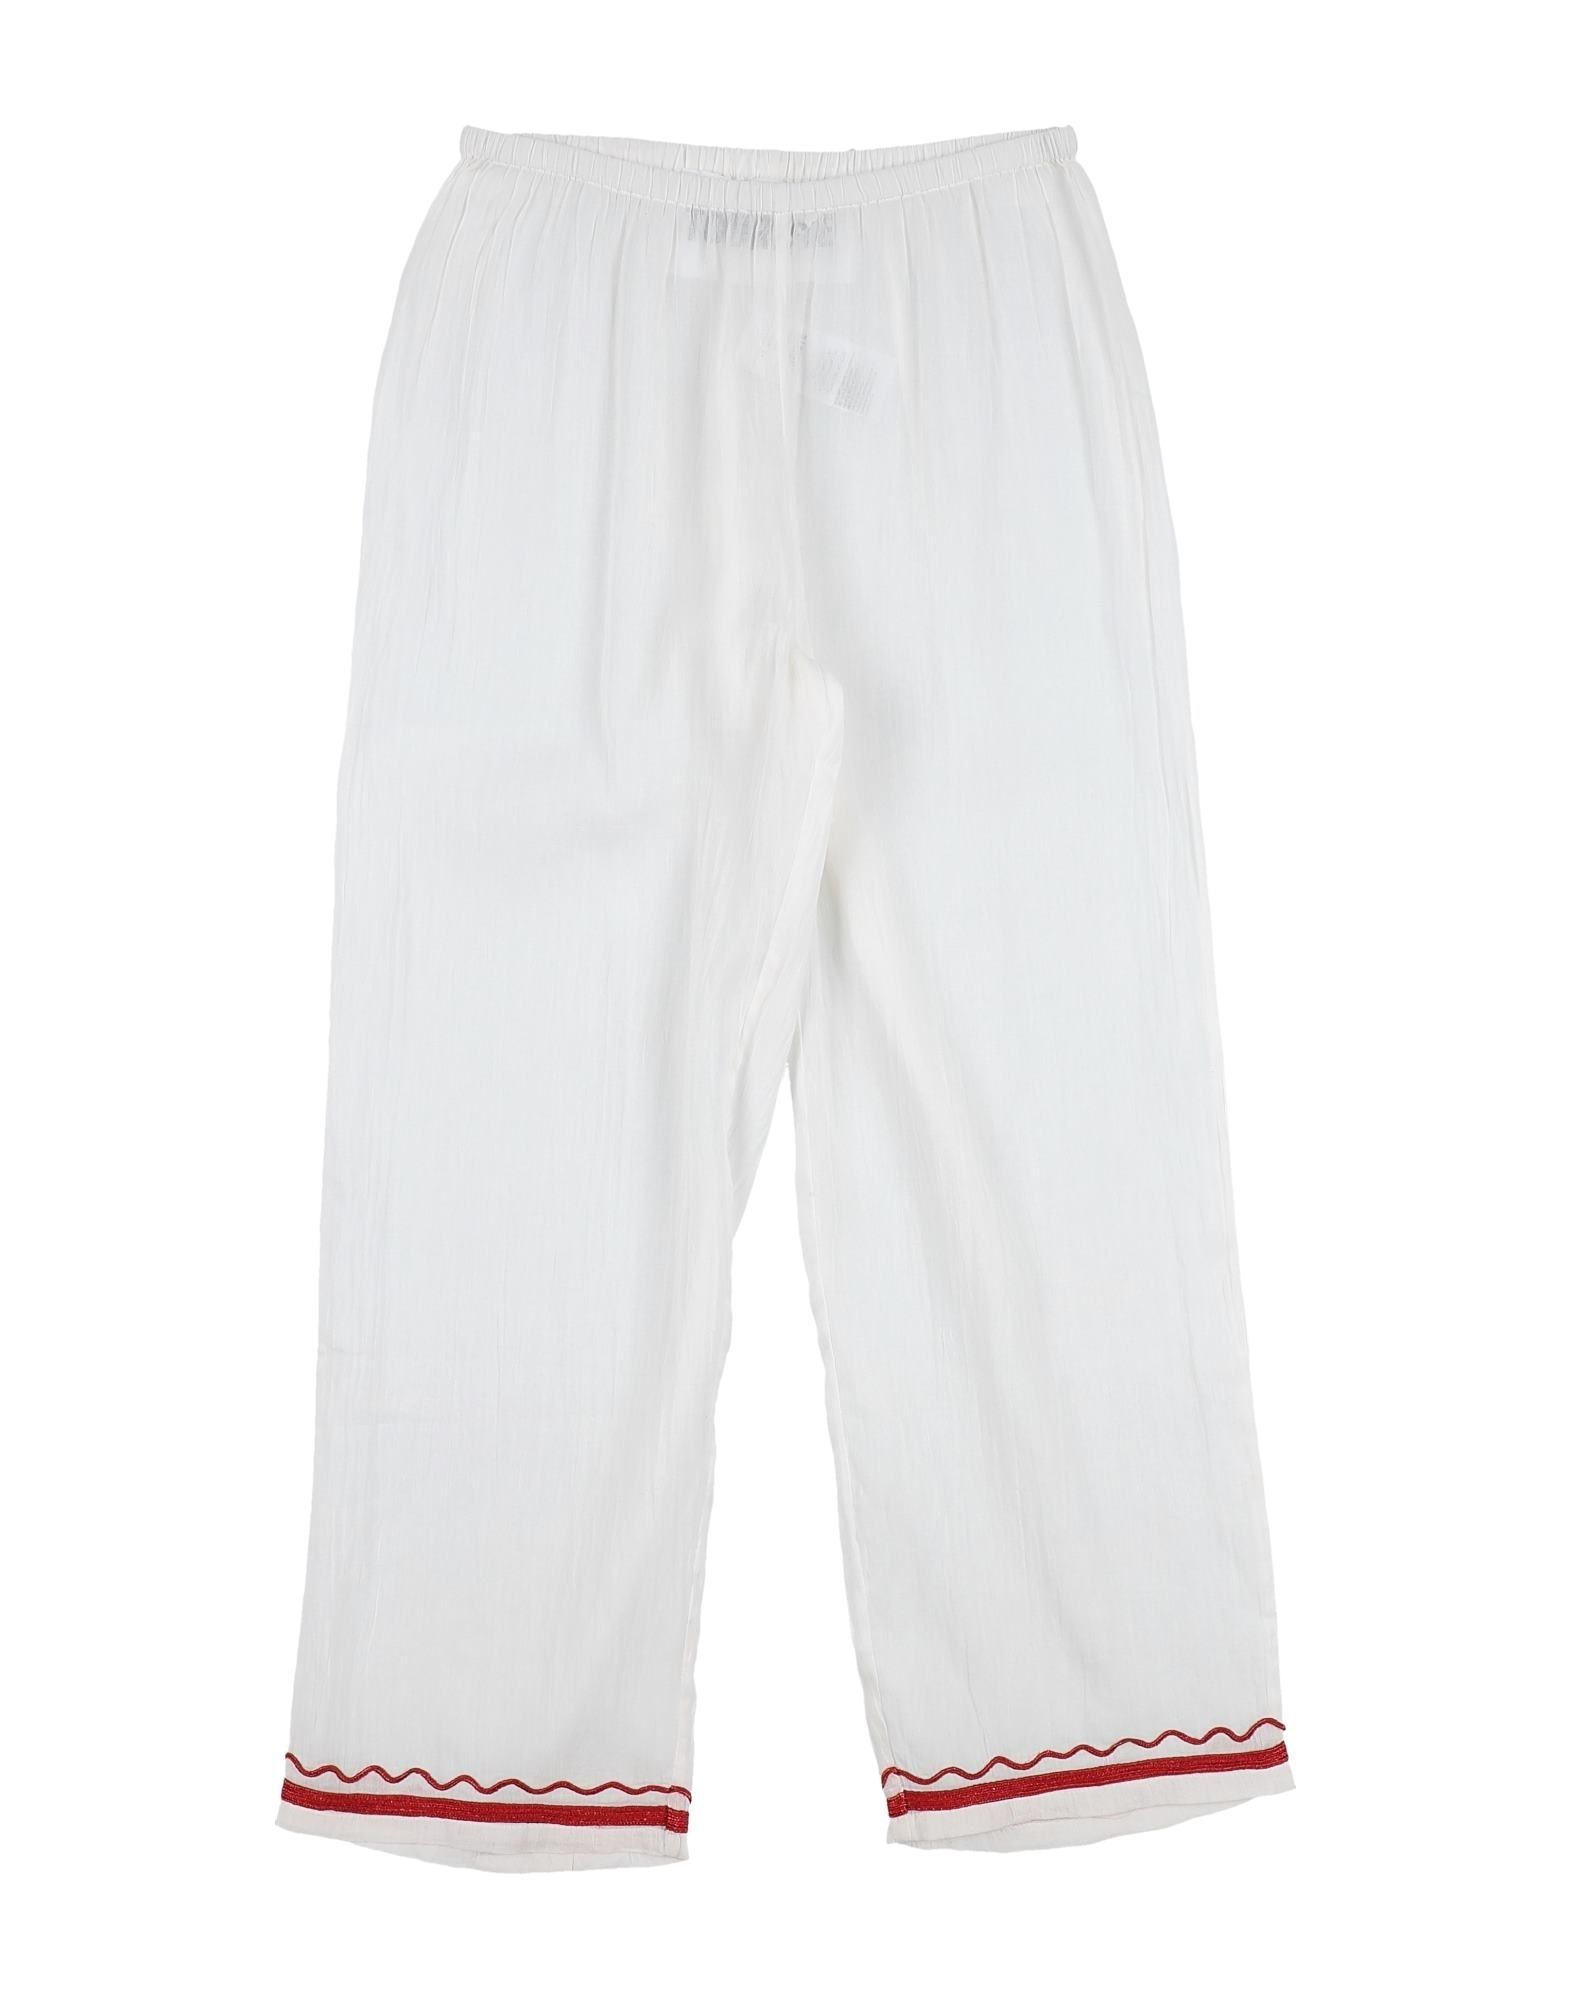 Touriste Kids' Casual Pants In White